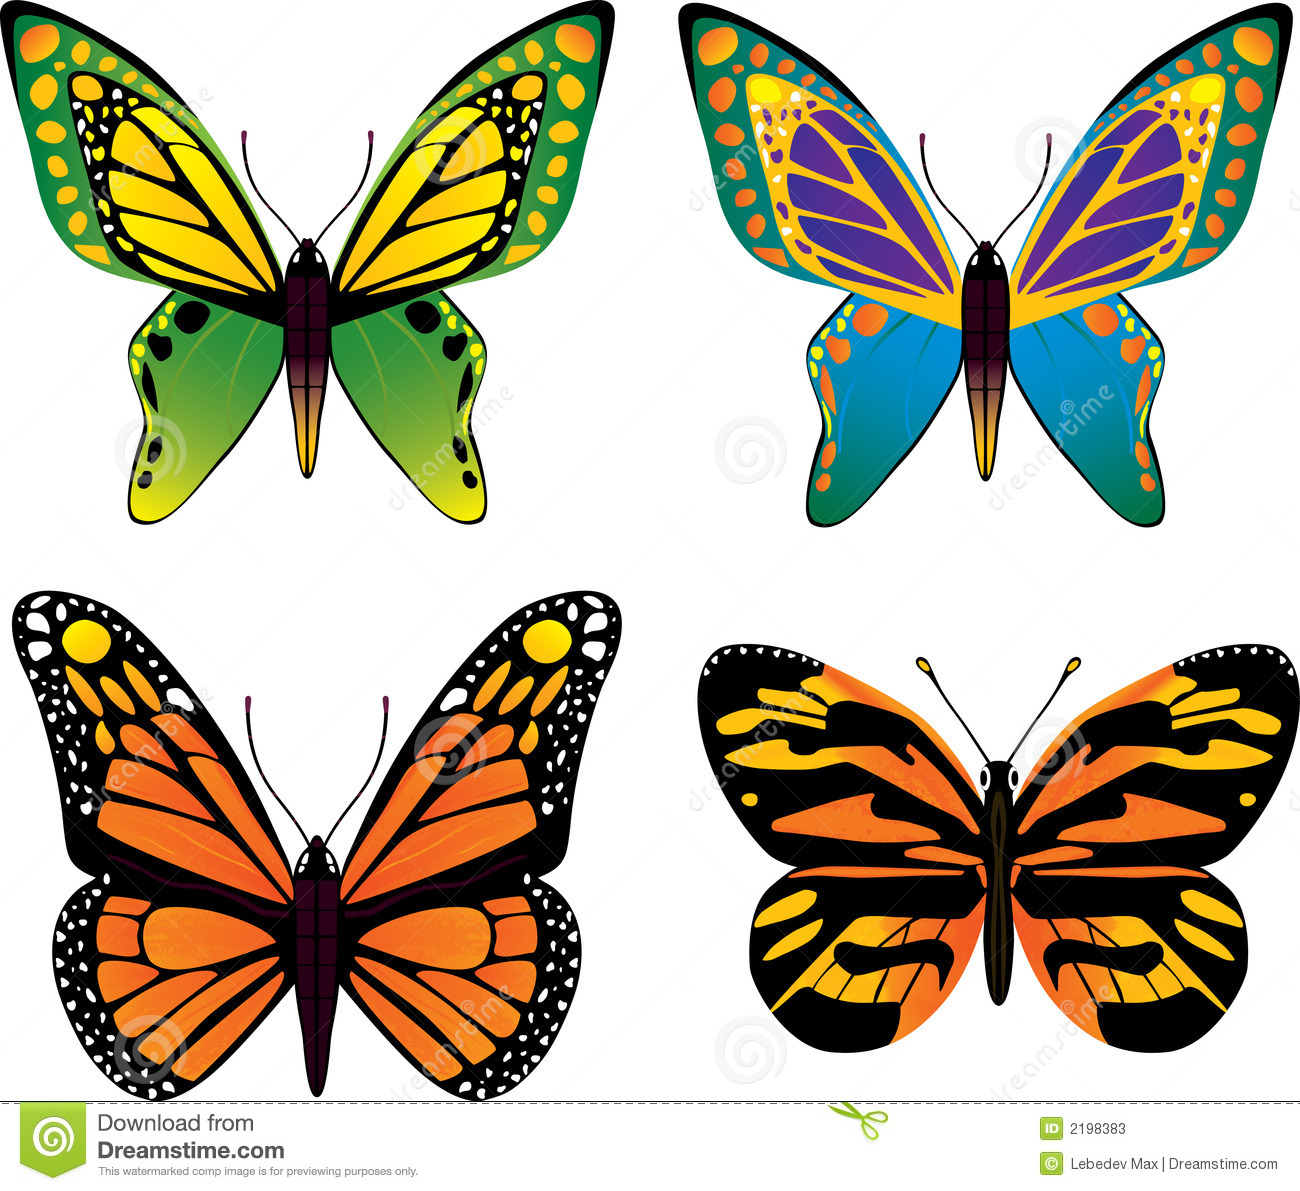 Butterfly vector illustration setfour different butterfly.